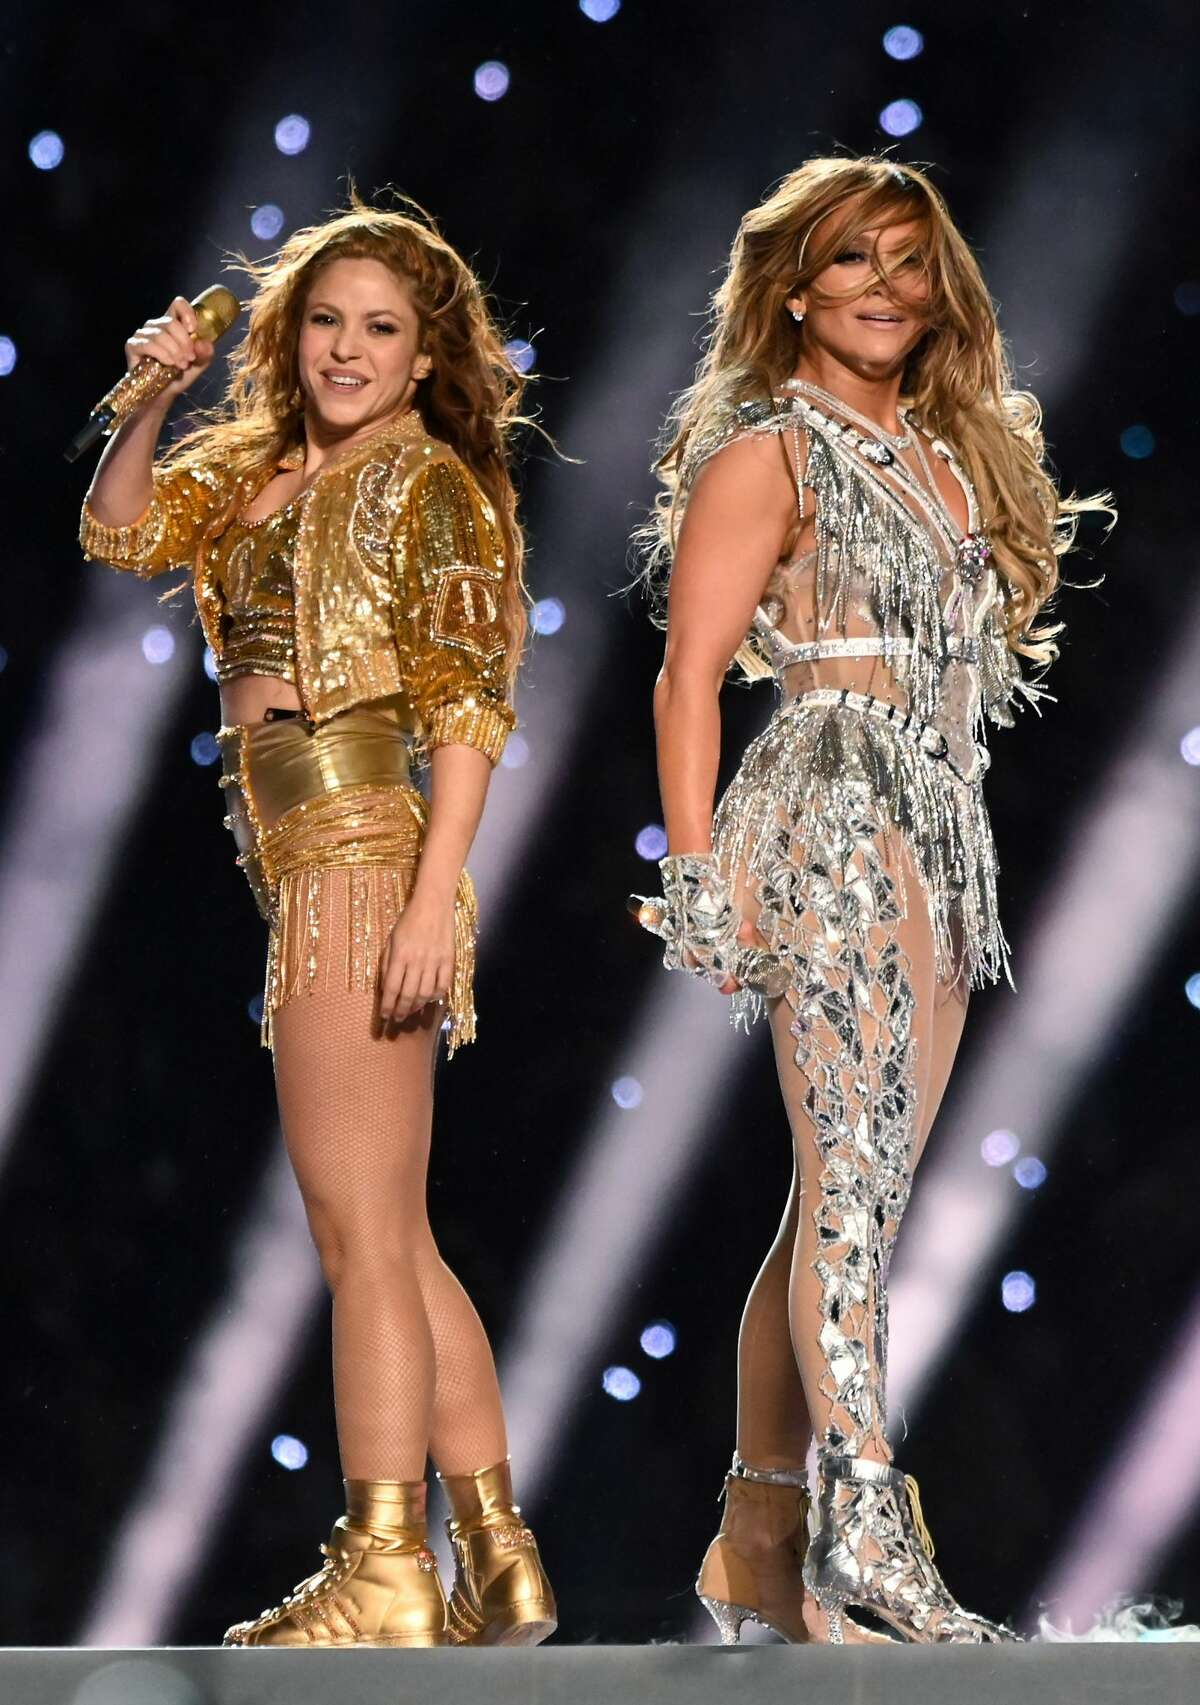 MIAMI, FLORIDA - FEBRUARY 02: (L-R) Shakira and Jennifer Lopez perform onstage during the Pepsi Super Bowl LIV Halftime Show at Hard Rock Stadium on February 02, 2020 in Miami, Florida. (Photo by Kevin Mazur/WireImage)